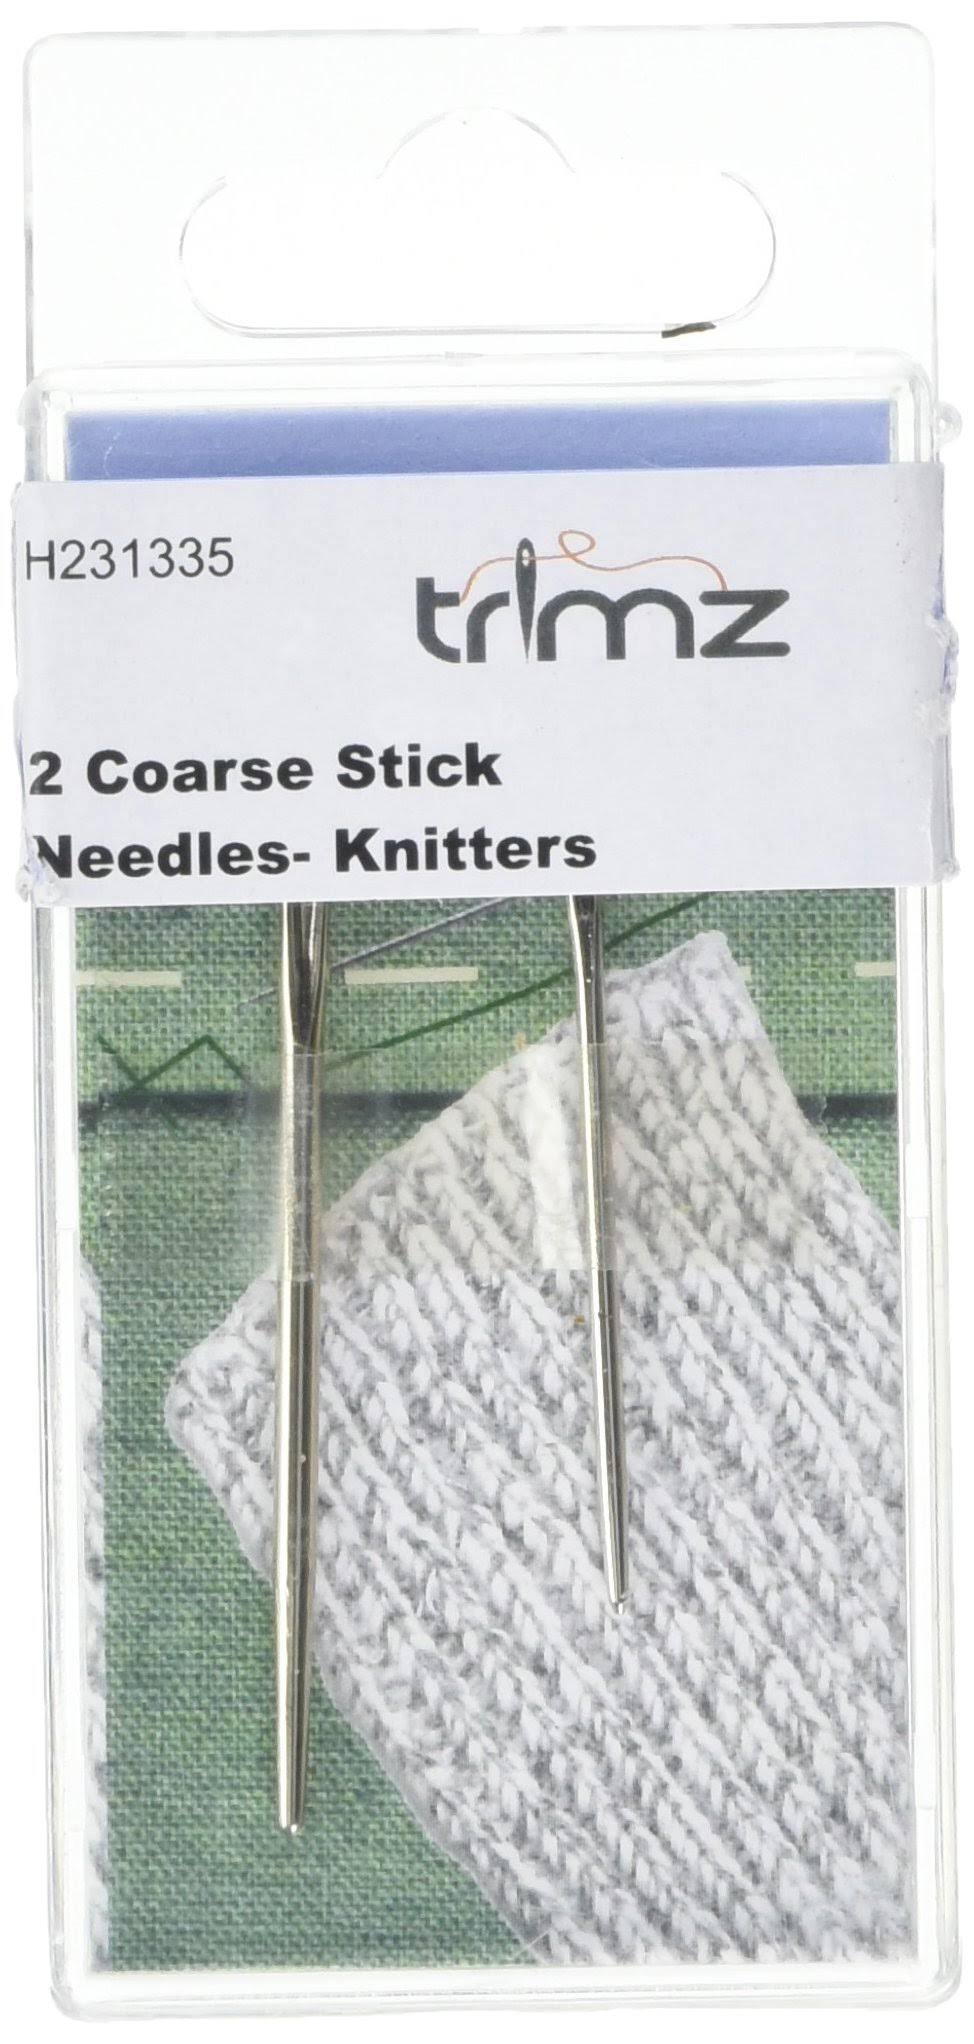 TSL 2 Knitting Needles, Metal, Silver, 10.5 x 5 x 0.5 cm